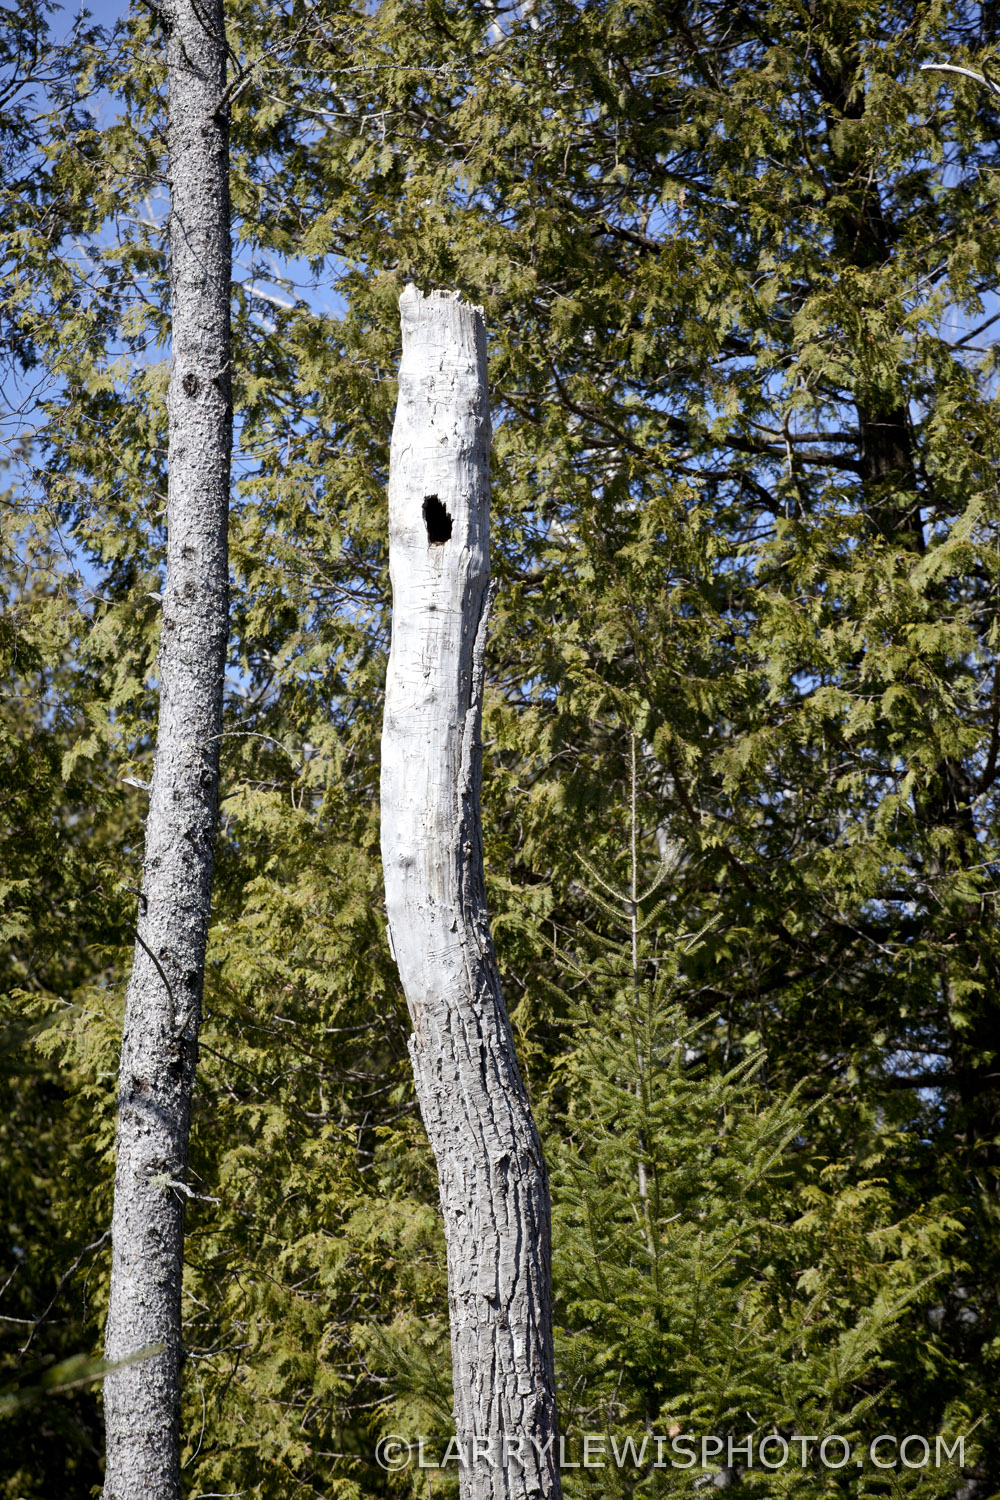 No Pileated Woodpecker here!